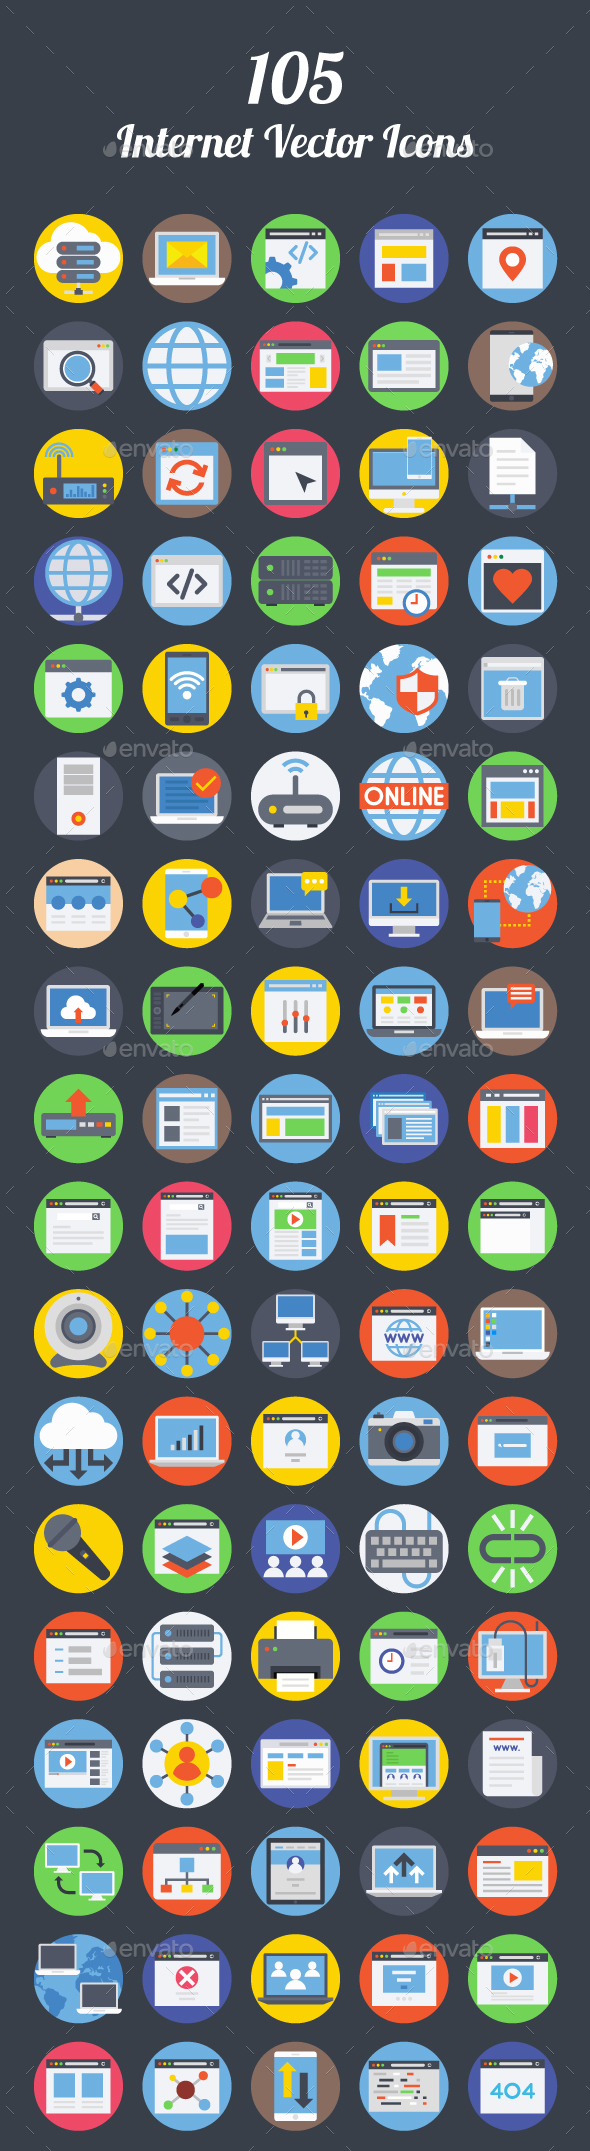 90 Internet Vector Icons - Icons